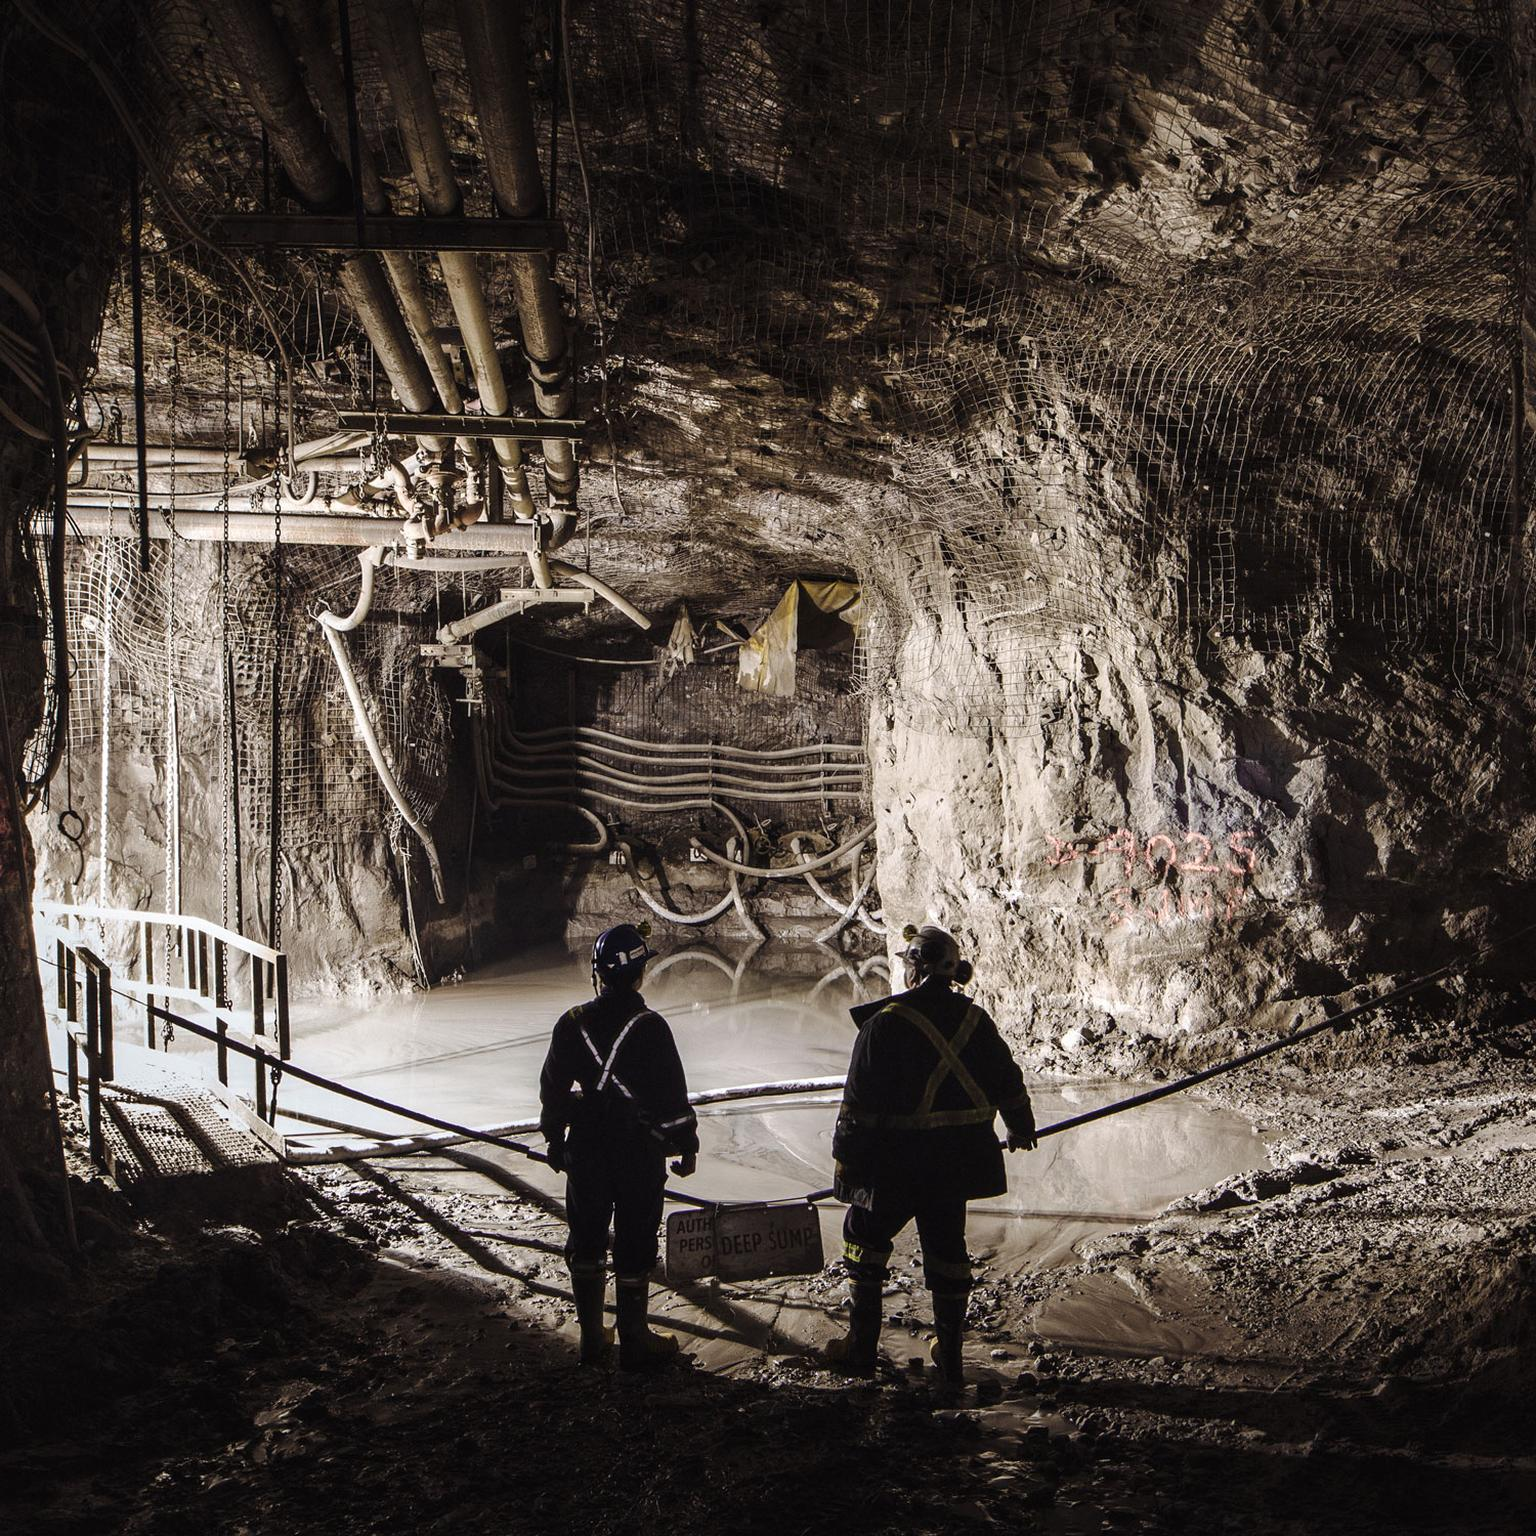 Underground at the Diavik diamond mine